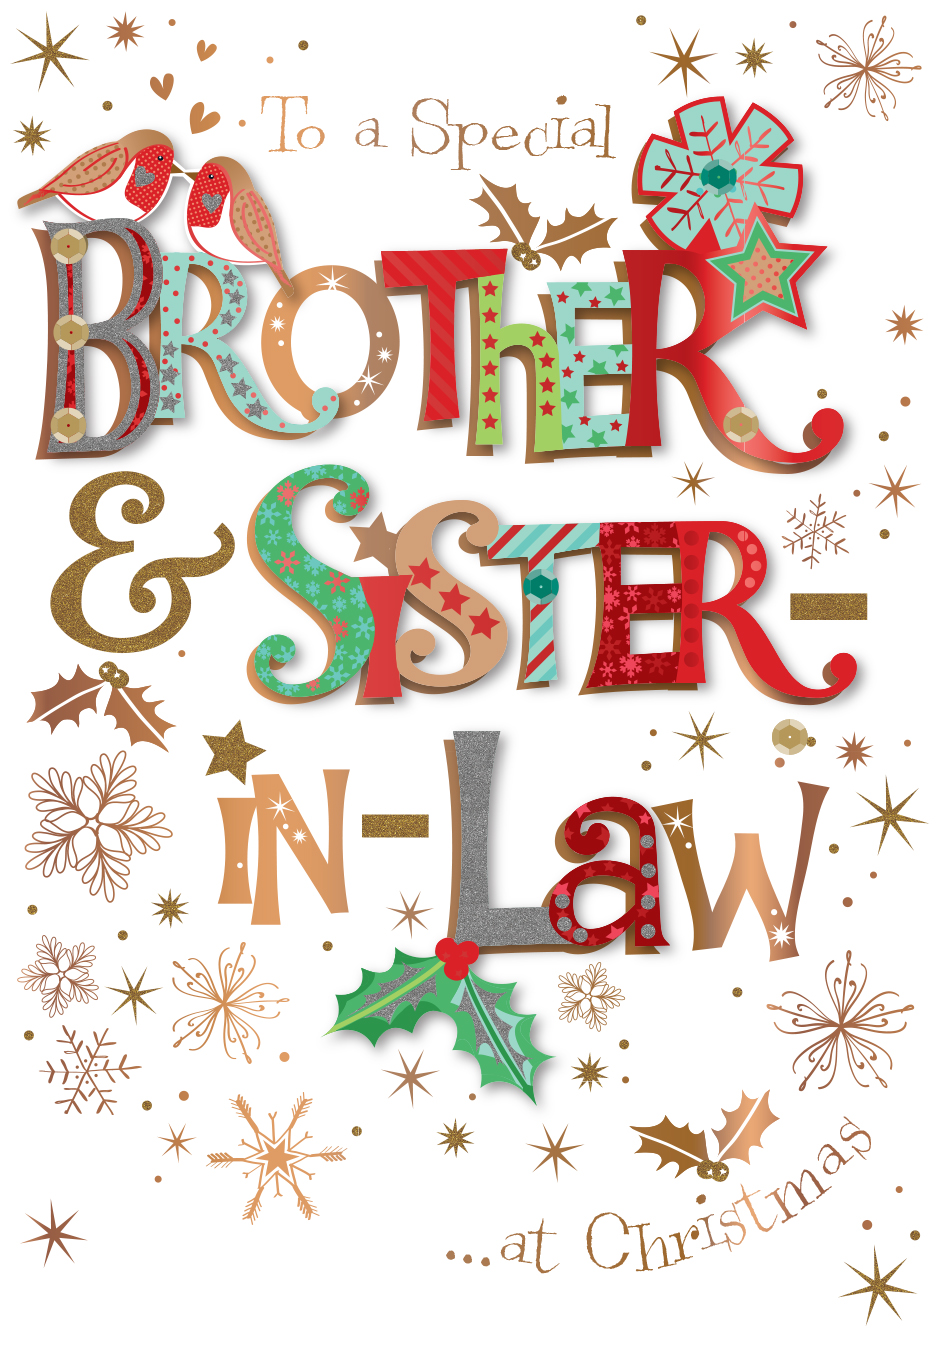 Brother sister in law embellished christmas greeting card cards brother sister in law embellished christmas greeting card m4hsunfo